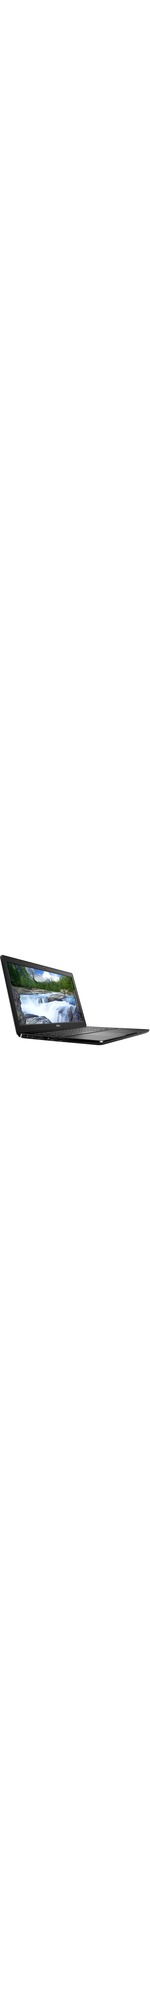 Dell Latitude 3000 3500 39.6 cm 15.6And#34; Notebook - 1920 x 1080 - Core i3 i3-8145U - 8 GB RAM - 256 GB SSD